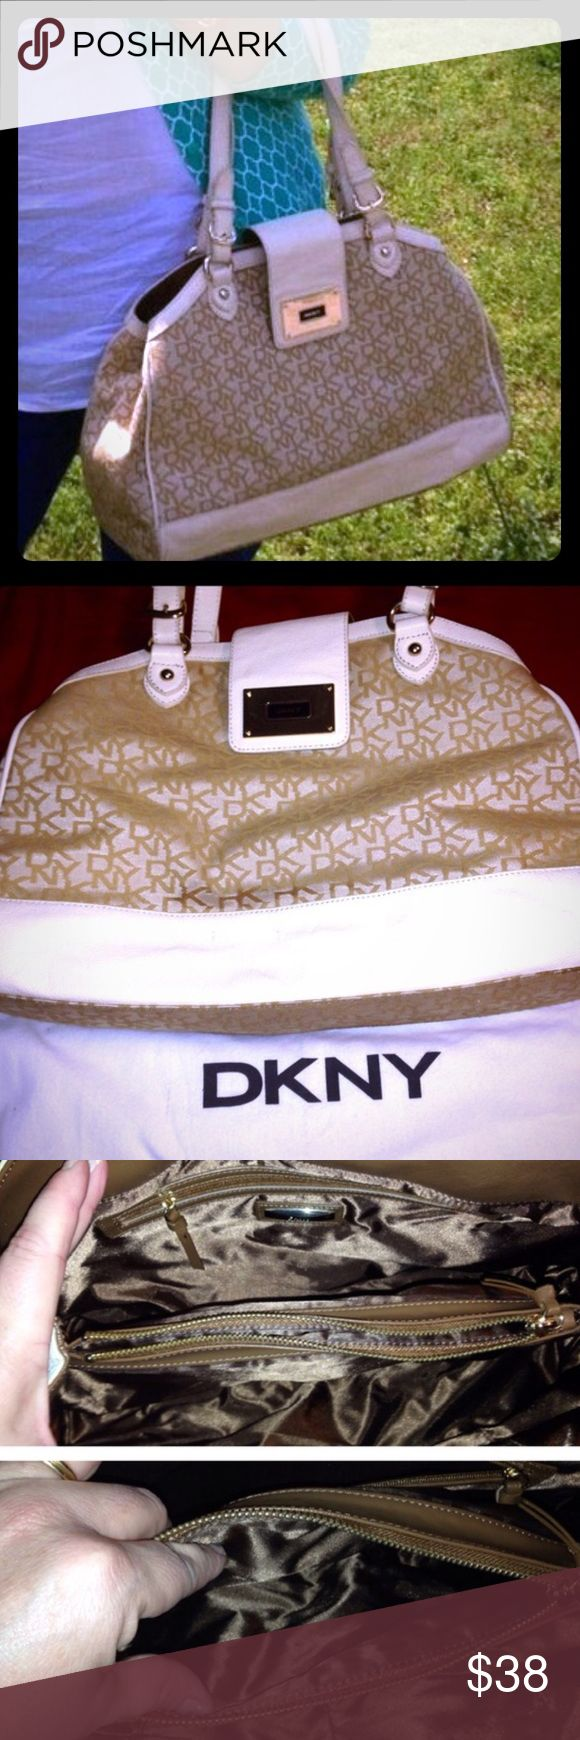 🛍Just In🛍 DKNY Large Signature Print Satchel This is a beautiful neutral purse.  Used only one season.  Nice cream and tan signature print.  Very roomy.  Not a Crossbody bag.  Dust bag included. There is some dirt on the bottom (see pic) but otherwise clean. DKNY Bags Satchels